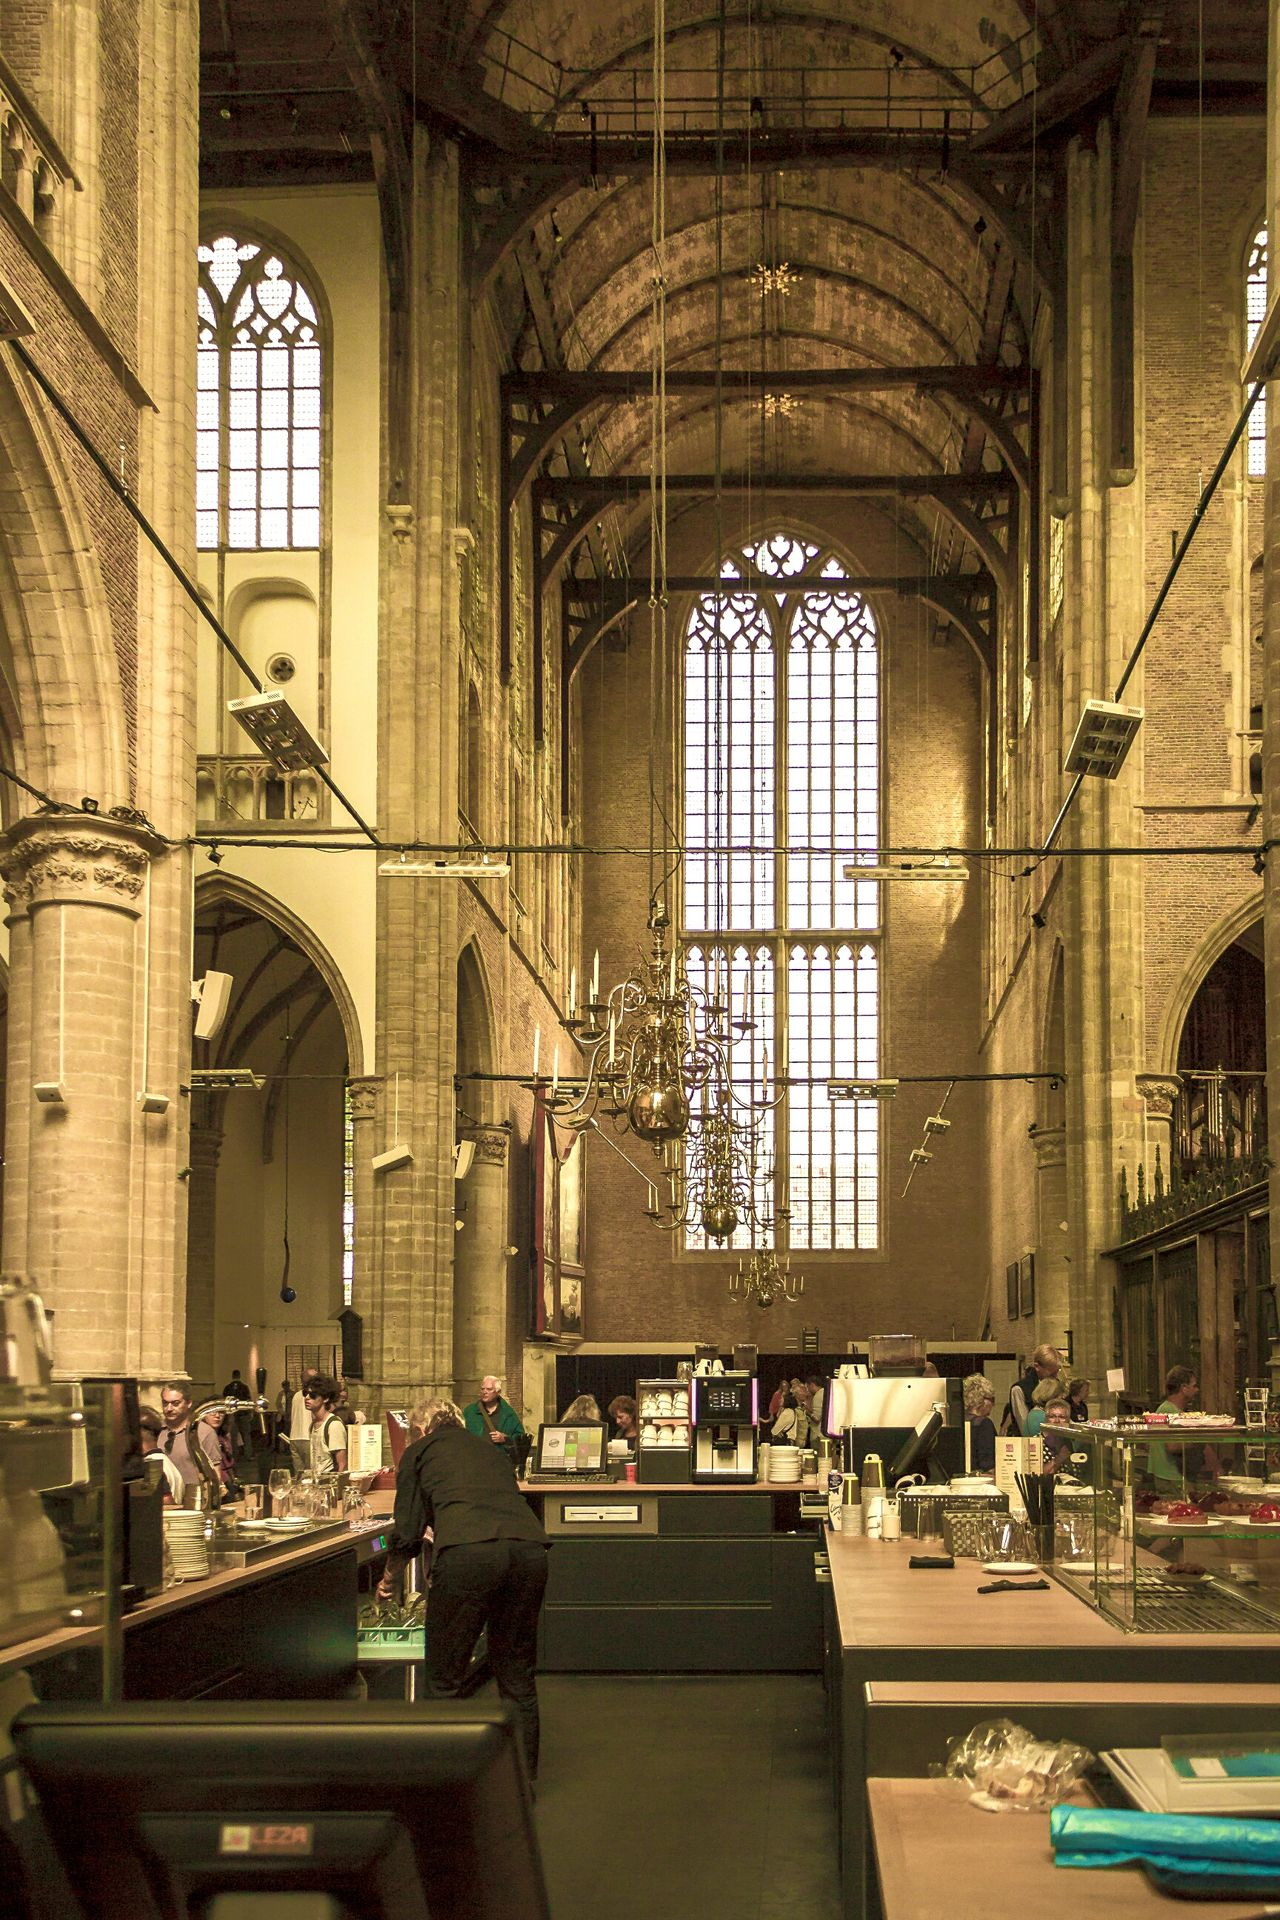 Cofeshop within Church in AlkmaarArchitecture No People My Year My View Church Cafe Nicospecial.de Indoors  Built Structure Alkmaar Architecture No People Travel Travel Destinations Arch Day Cofeshop The Street Photographer - 2017 EyeEm Awards